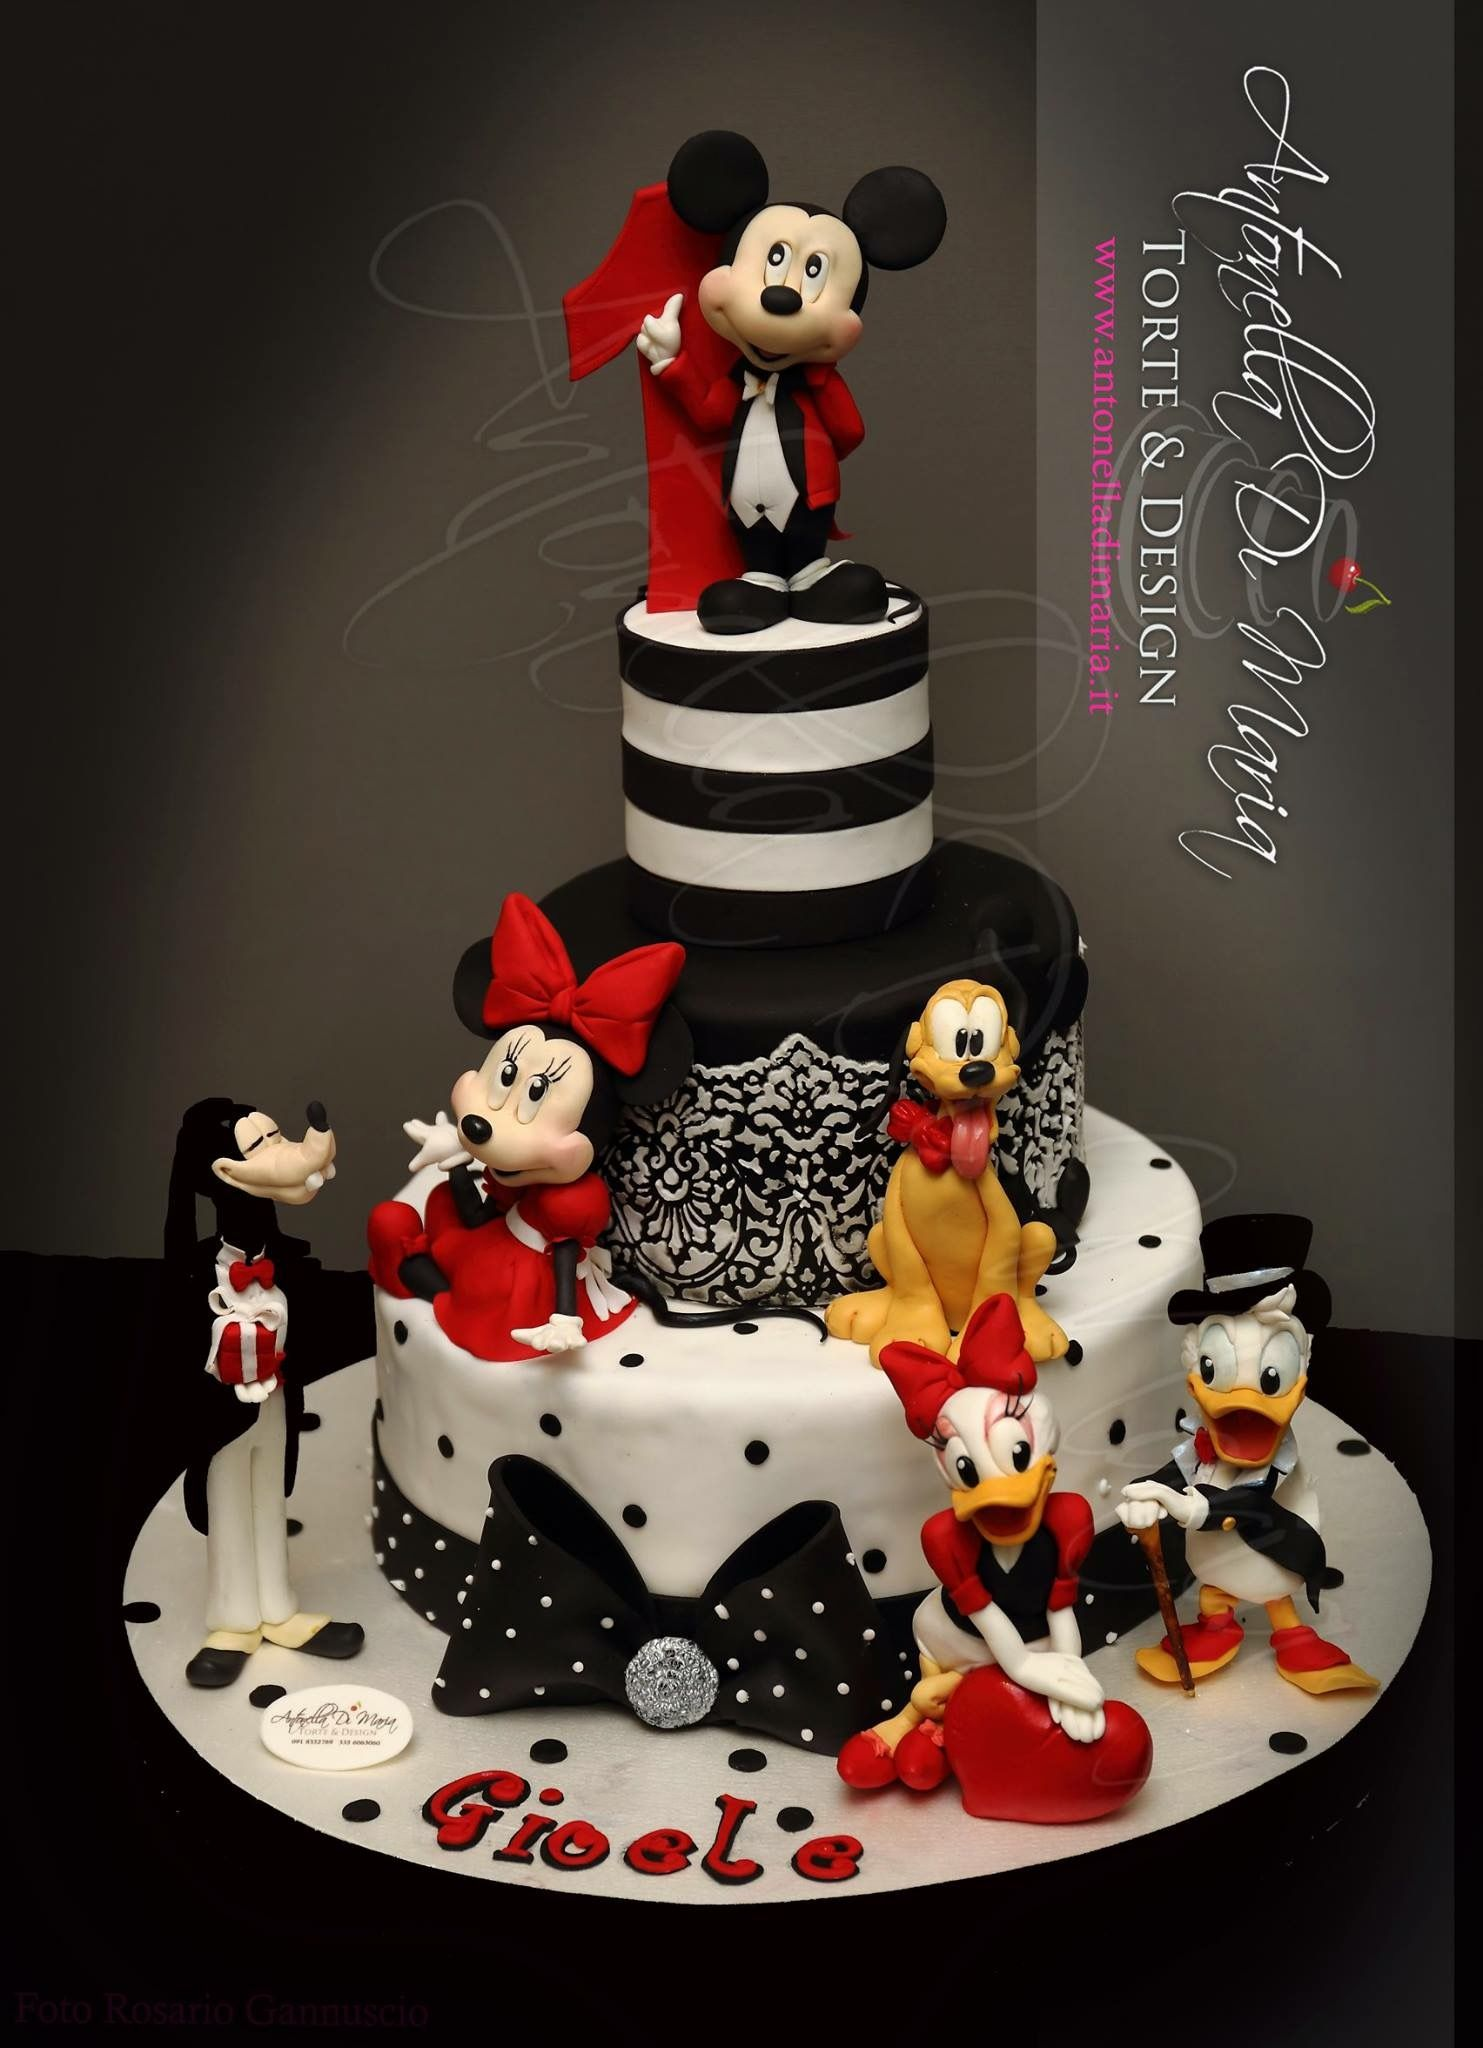 Mickey Mouse Cake Https Lomejordelaweb Es With Images